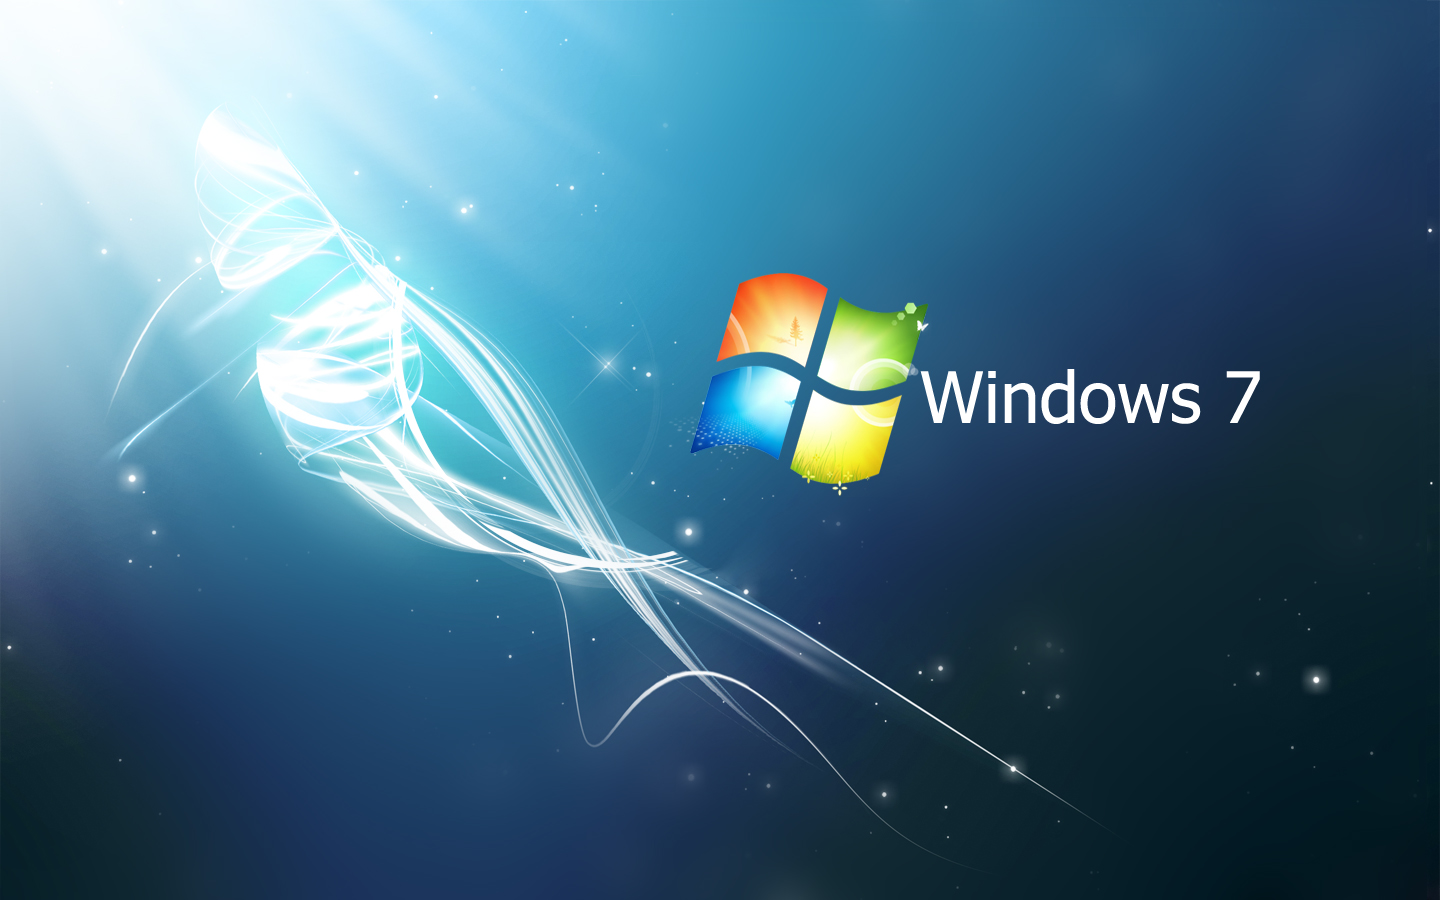 Tiptop 3d hd wallpapers collection windows 7 wallpapers - Hd wallpapers for pc windows ...